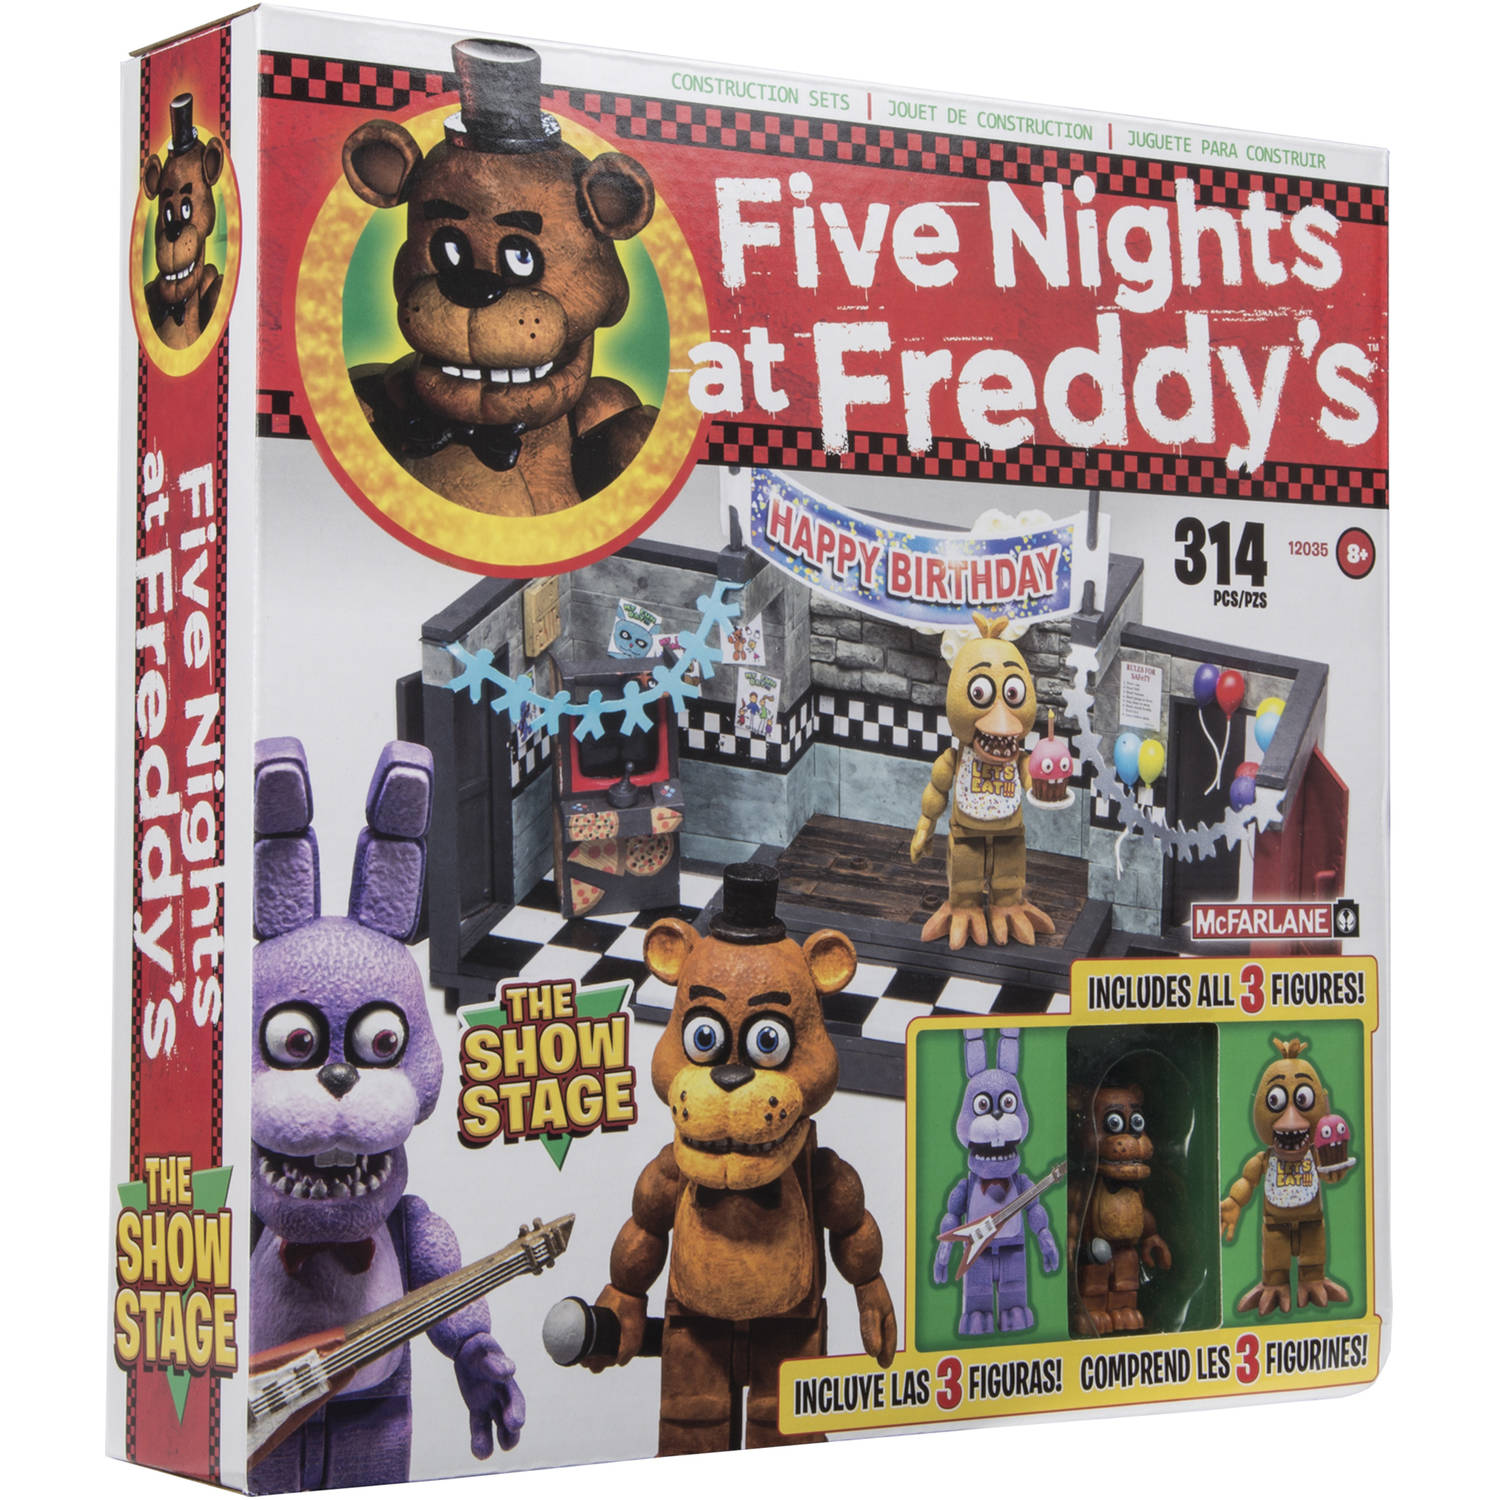 Mcfarlane Five Nights at Freddy's Show Stage